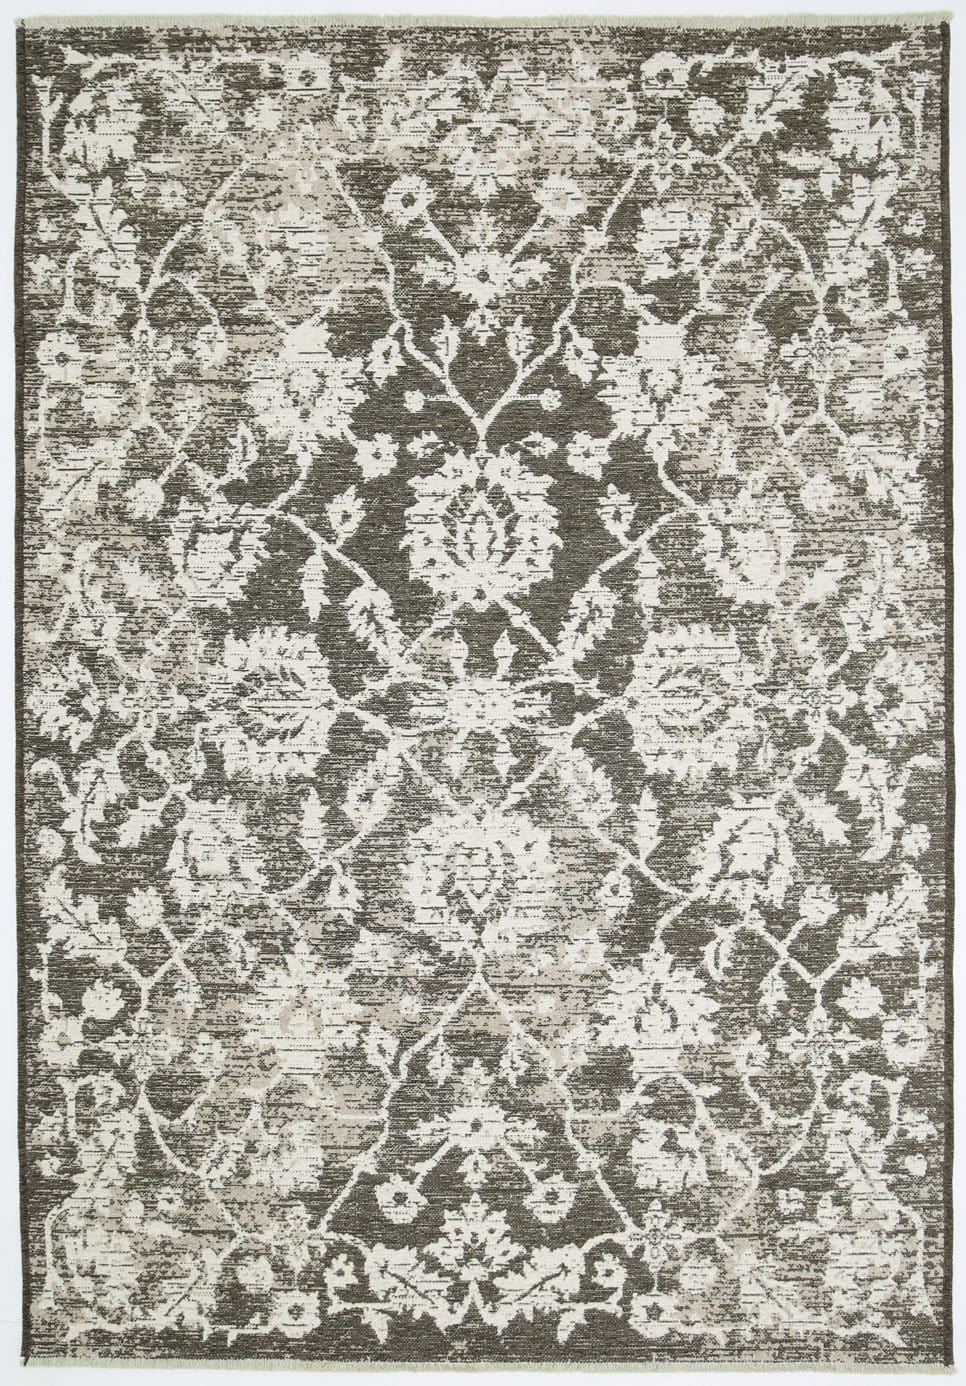 Pomona Beige and Grey Floral Transitional Reversible Rug